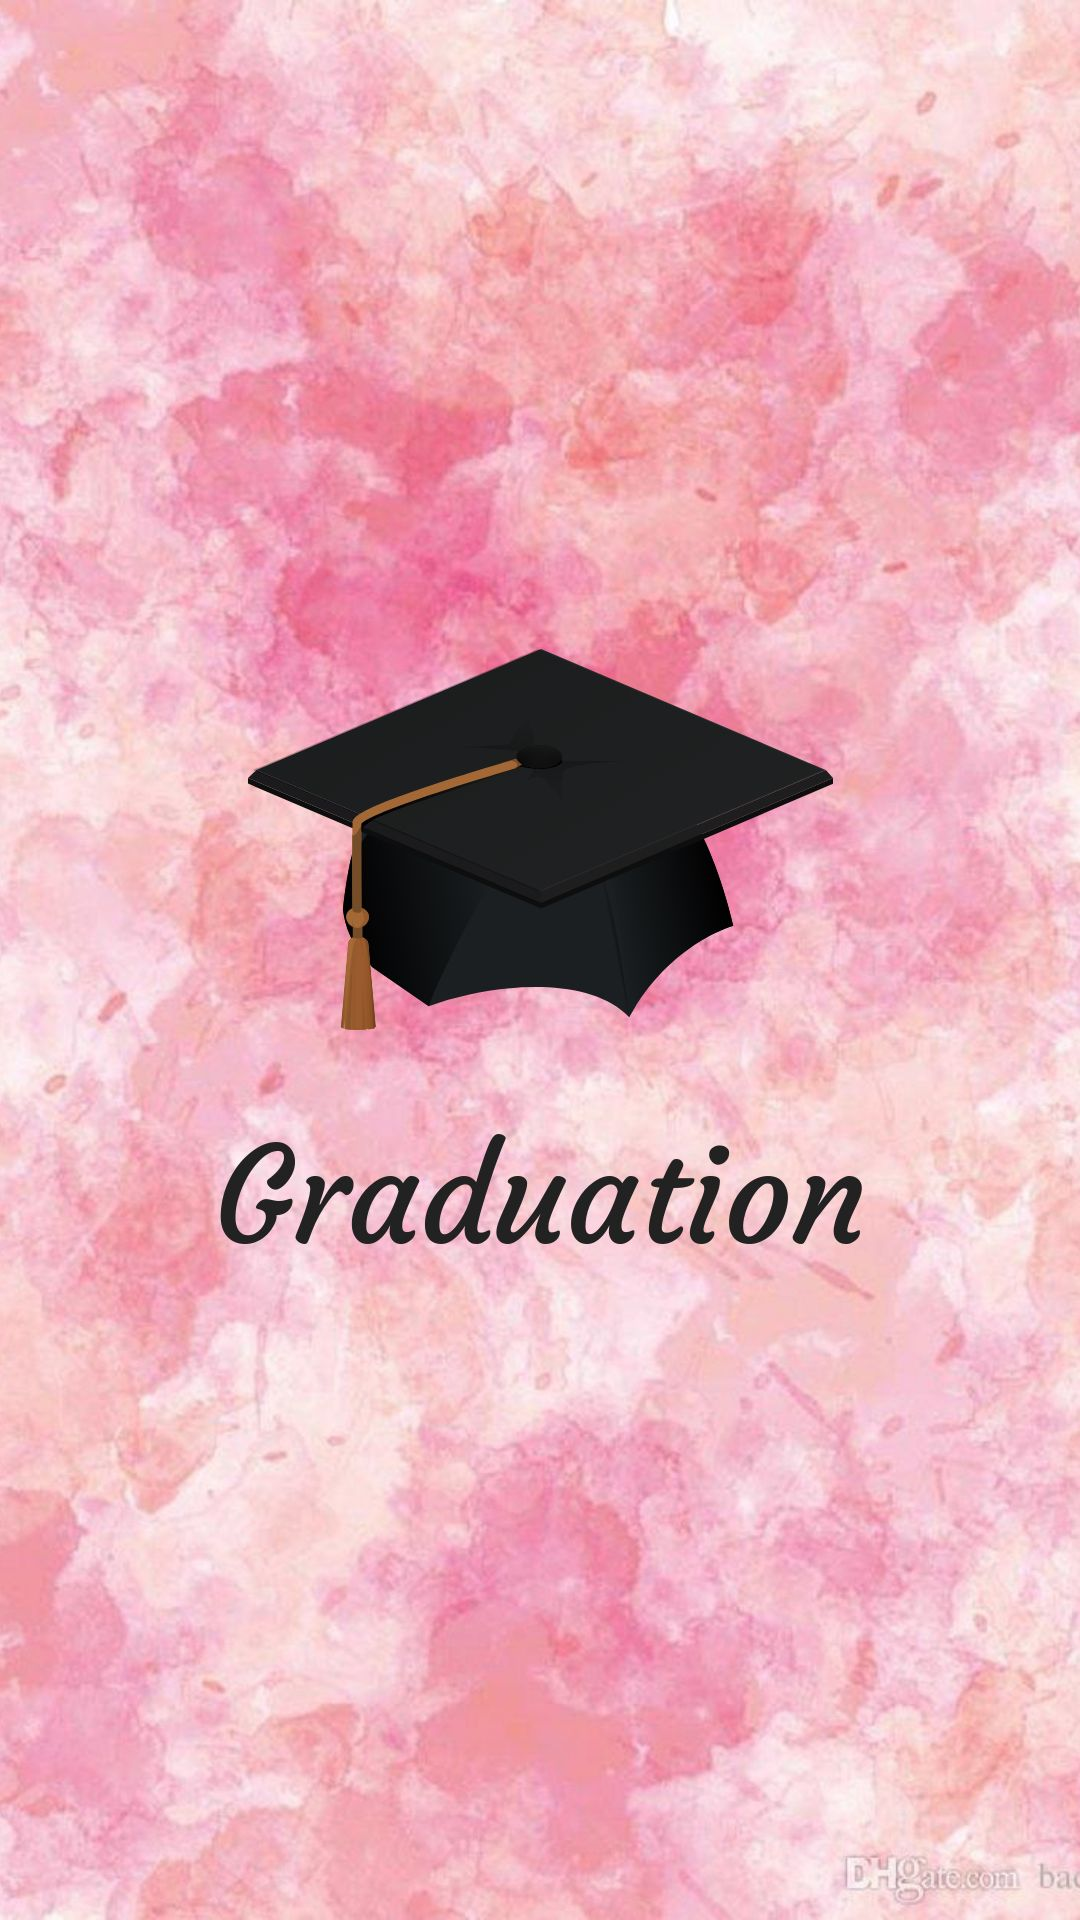 Photo of Background for Instagram highlight (graduation)